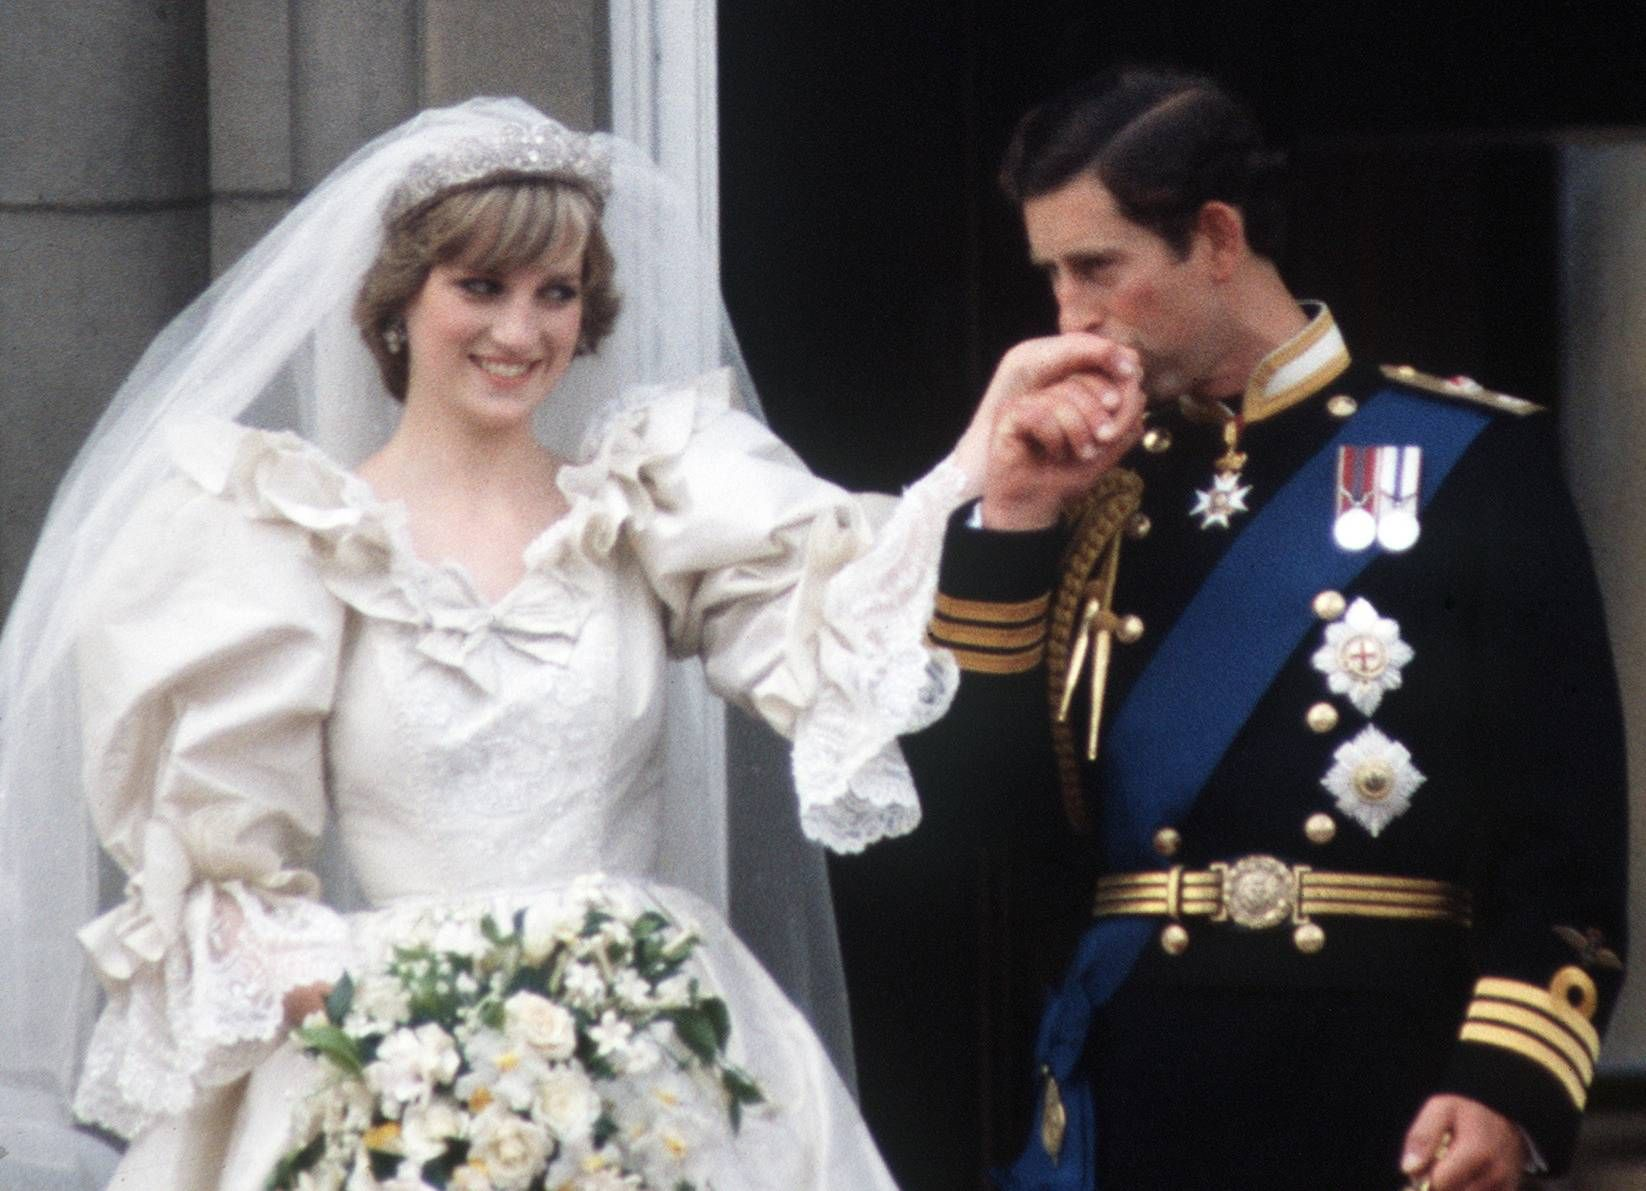 Princess Diana of Britain was one of the most beautiful women of her time.